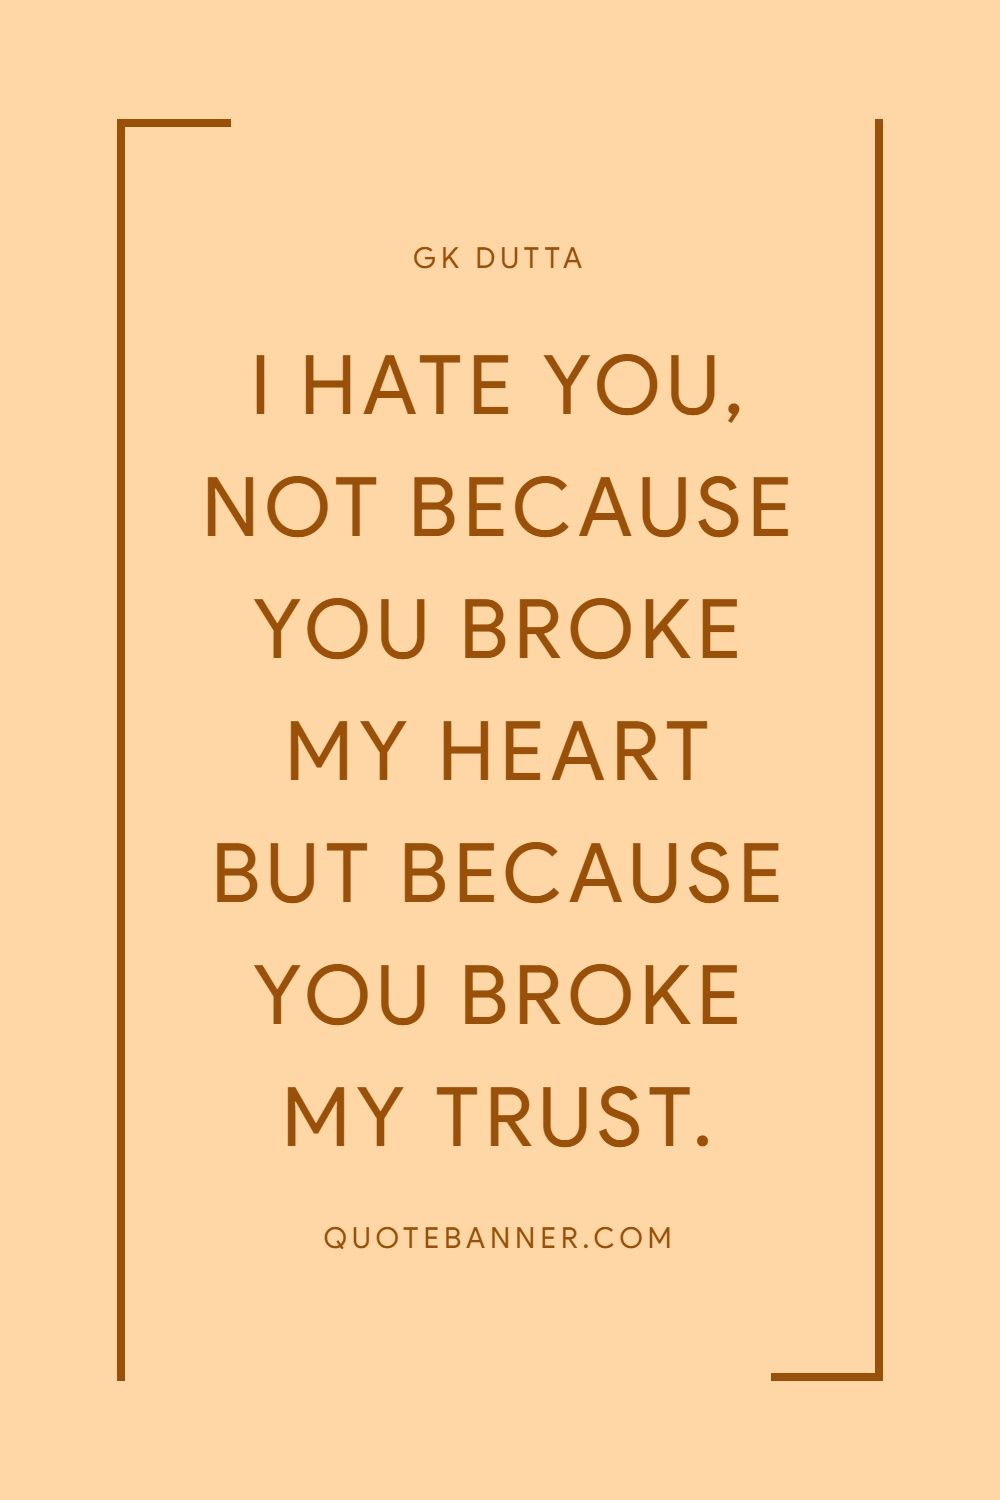 You broke my trust quotes